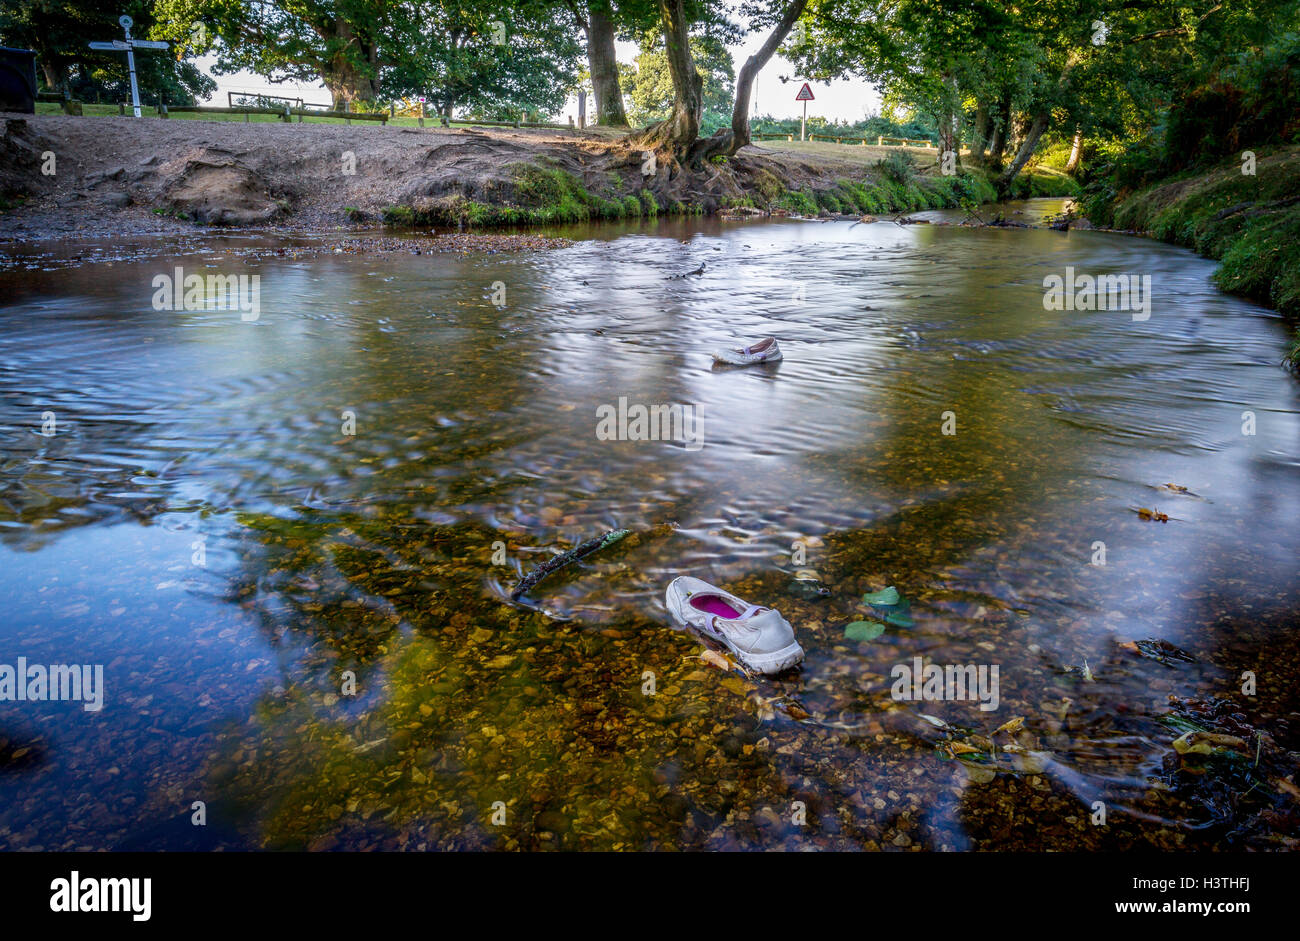 flowing river with forgotten shoes left behind - Stock Image